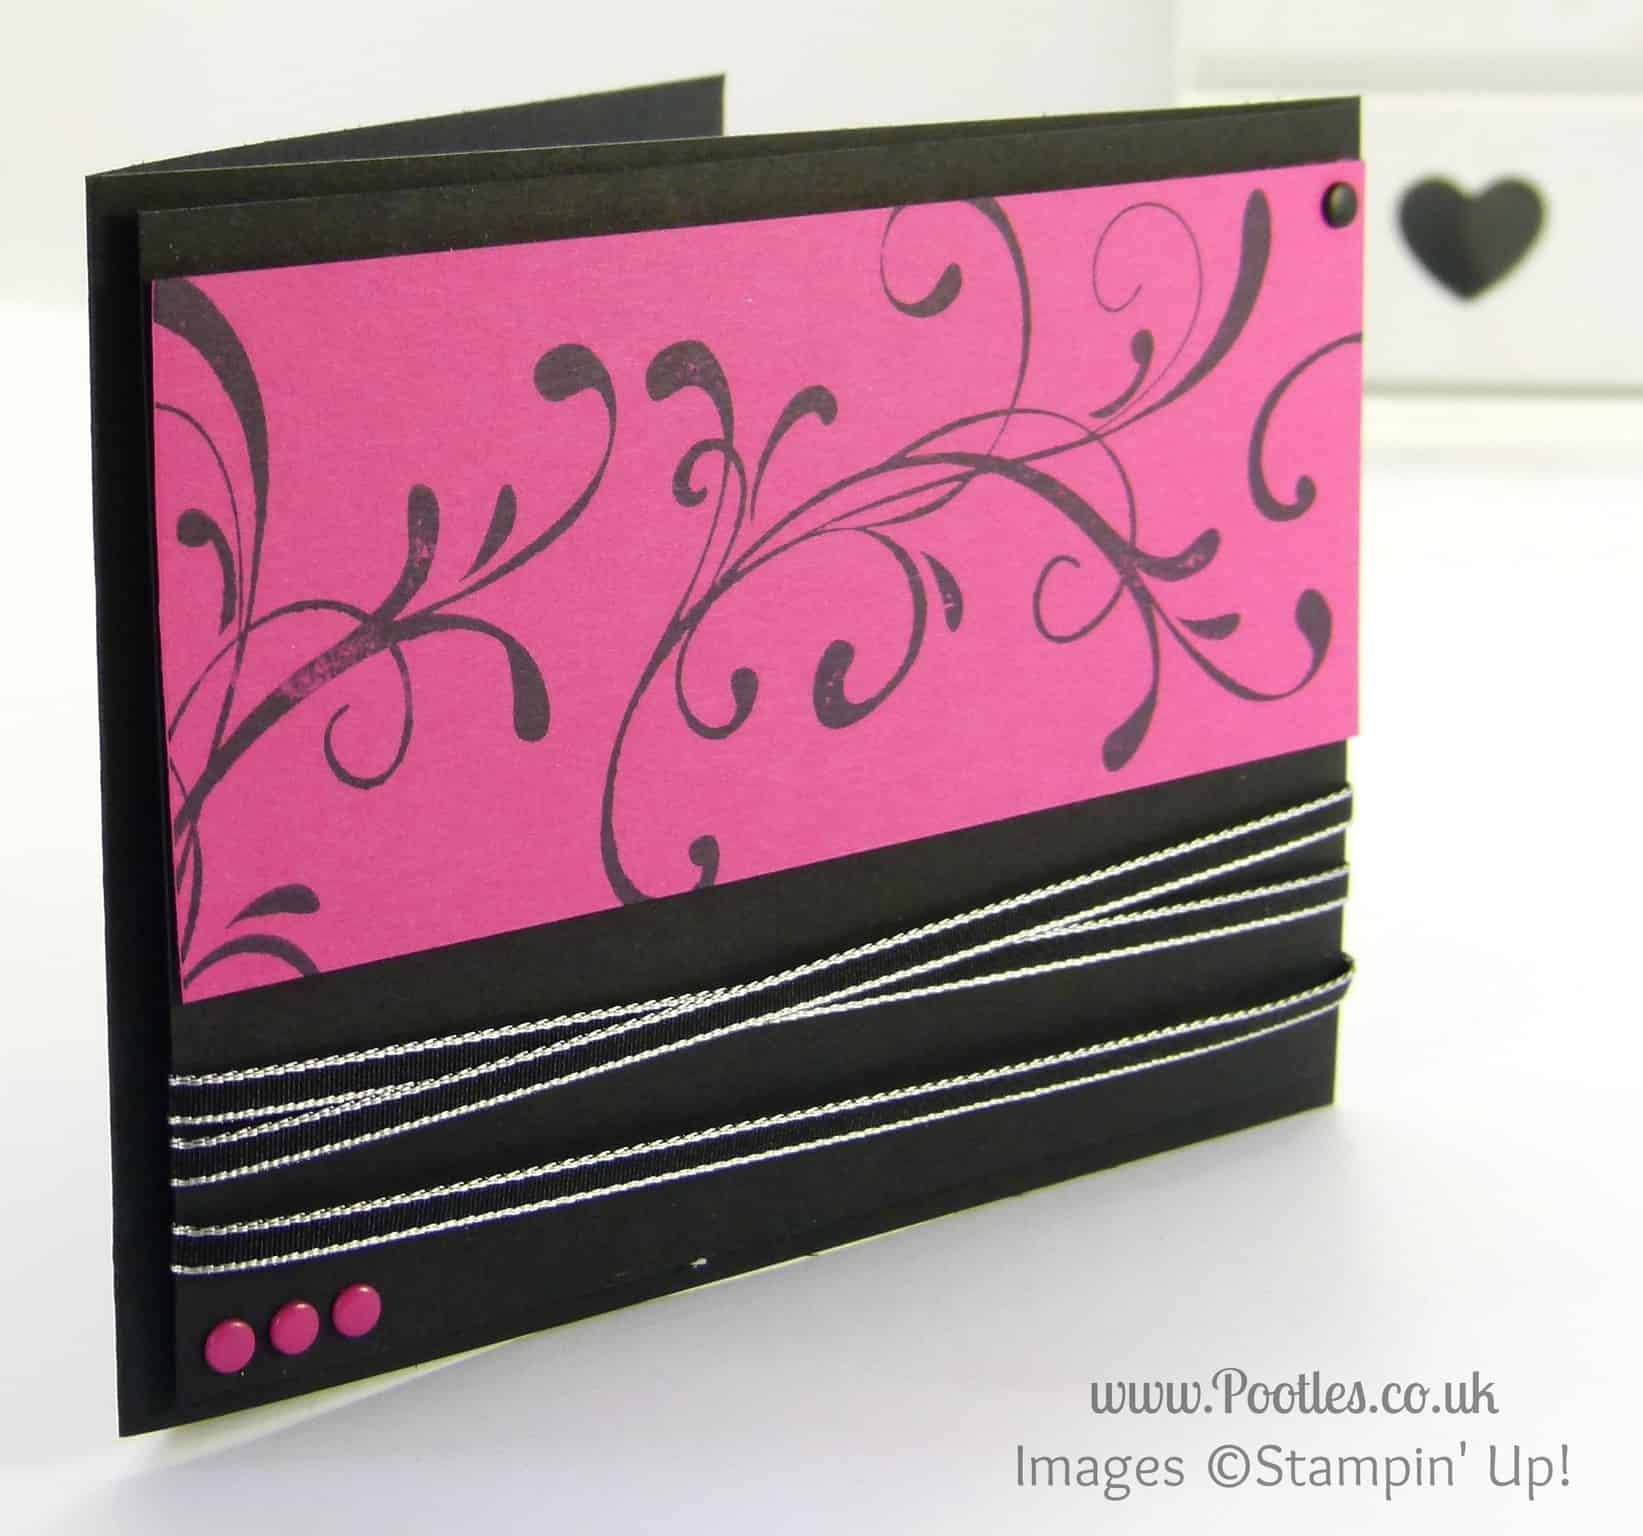 Stampin' Up! UK Demonstrator Pootles - Everything Eleanor. Again Why not!